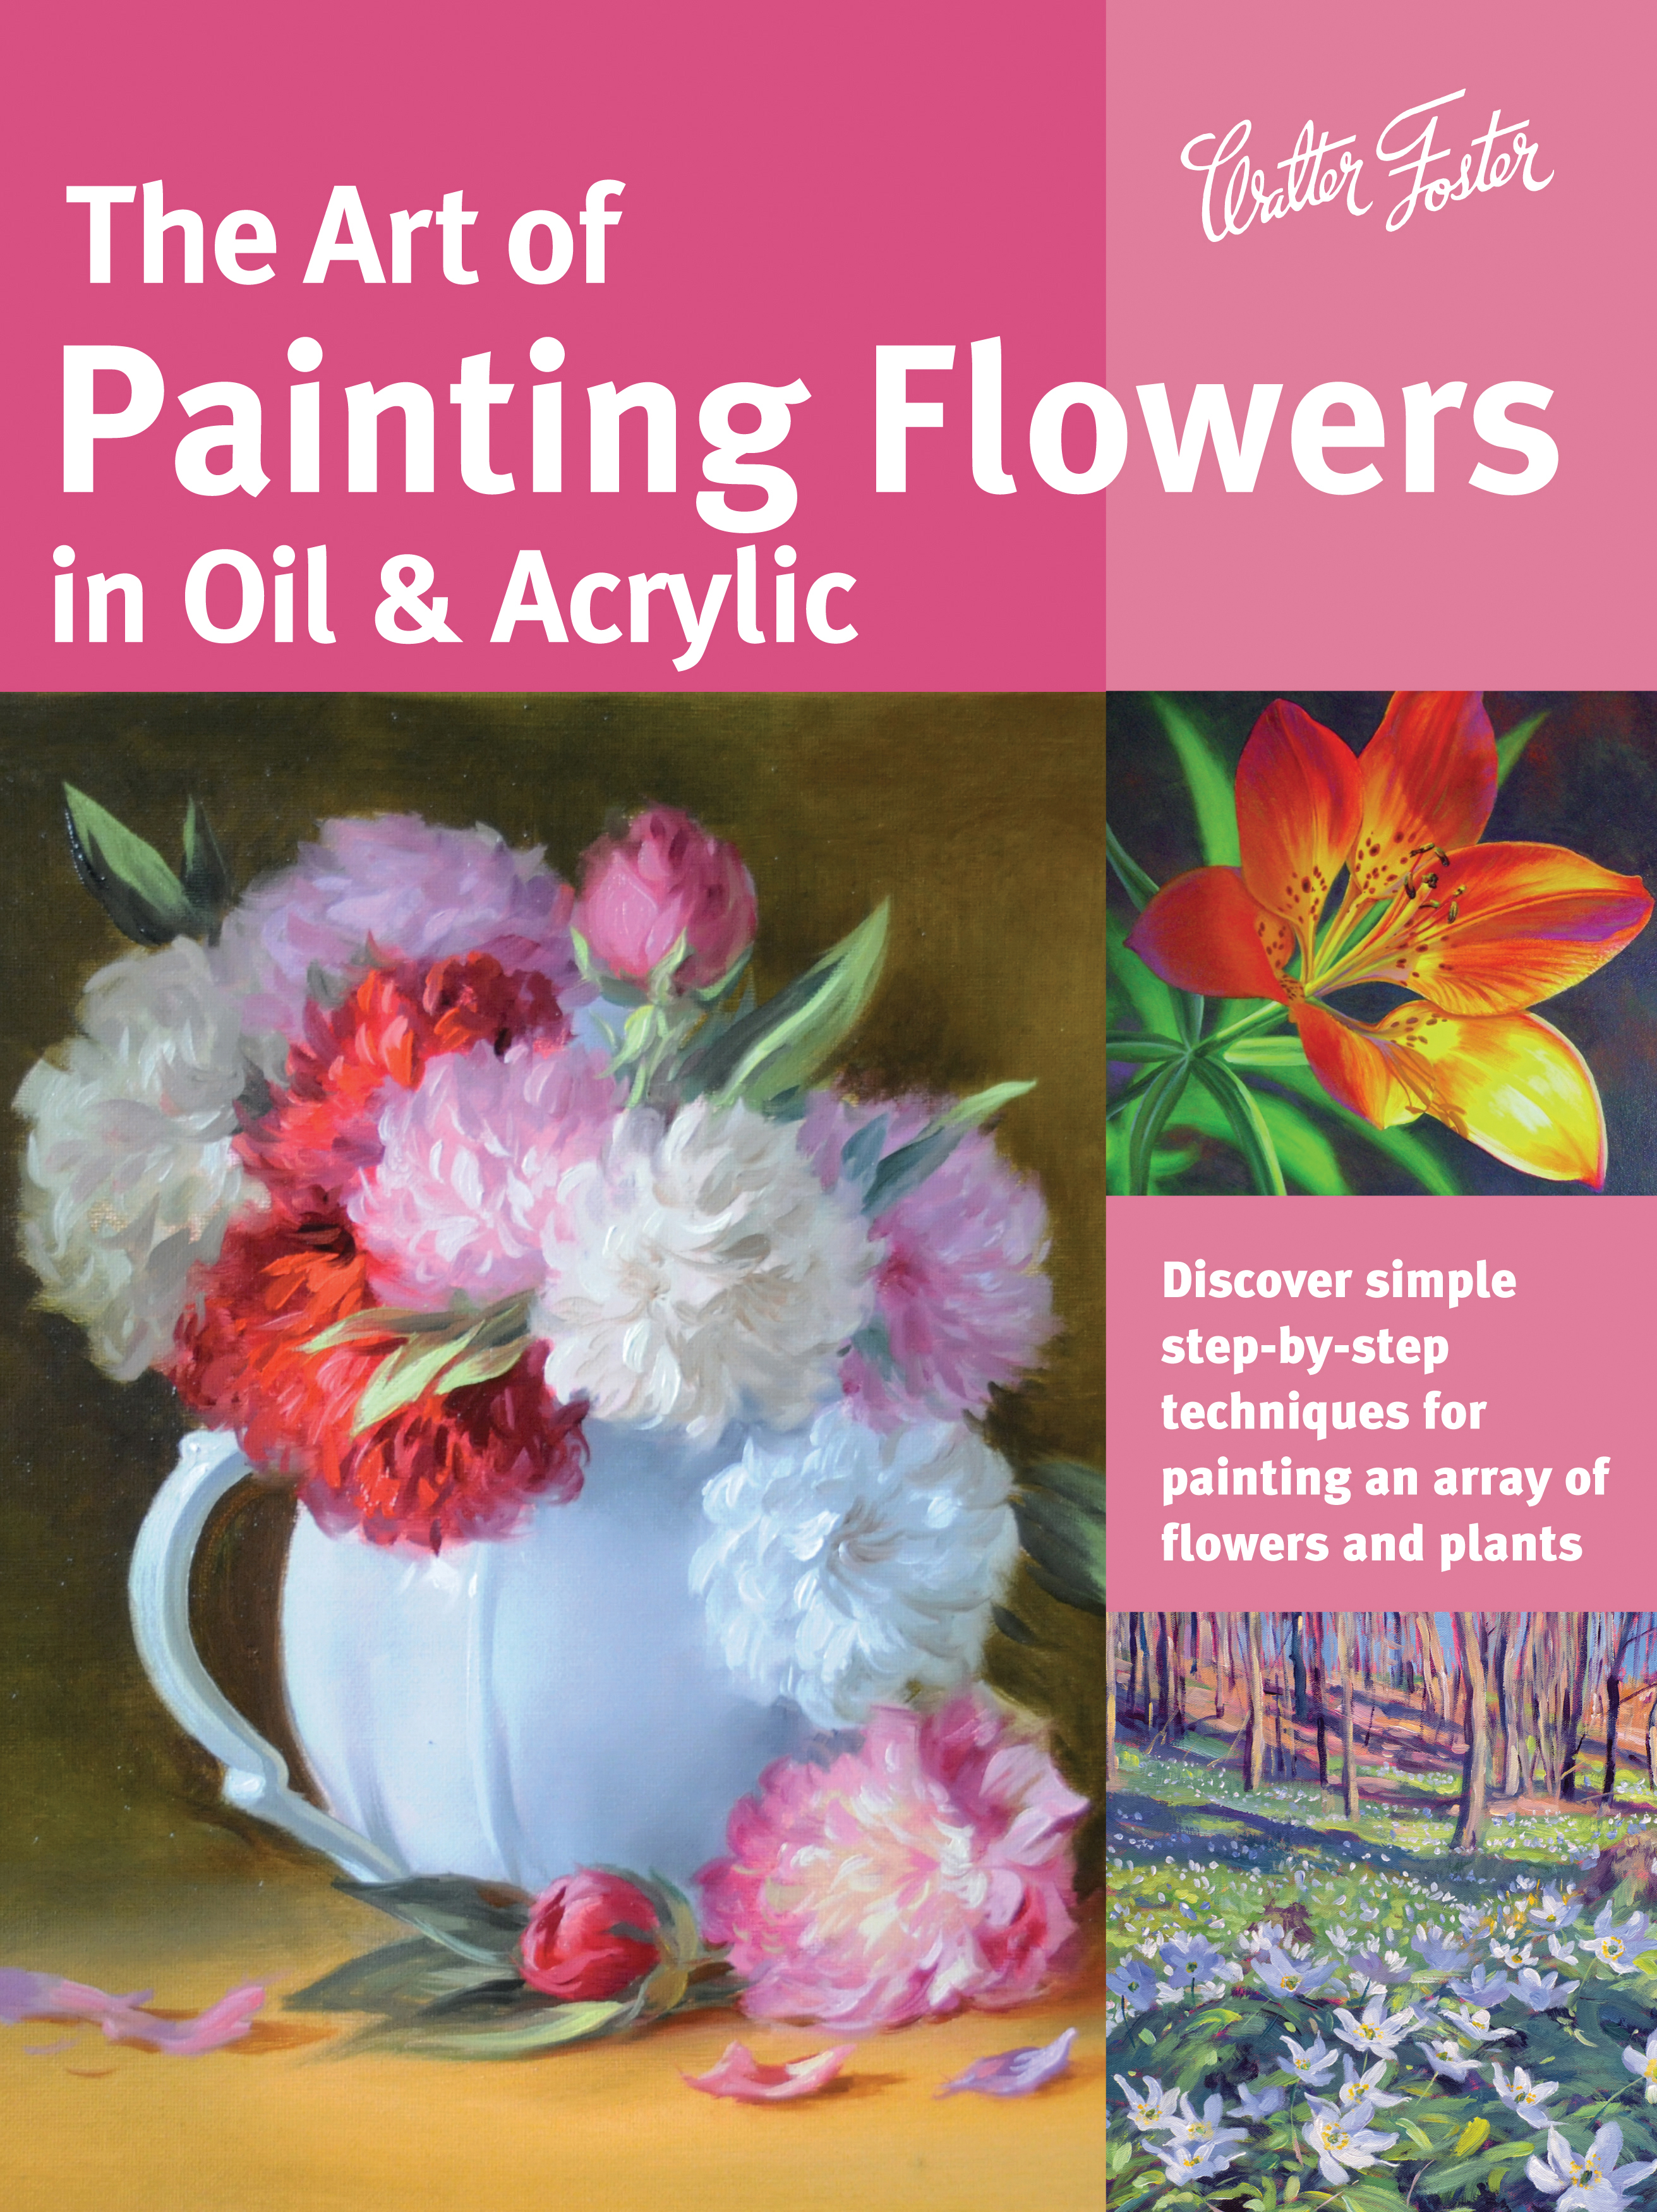 Book Cover Watercolor Flowers : The art of painting flowers in oil acrylic david lloyd